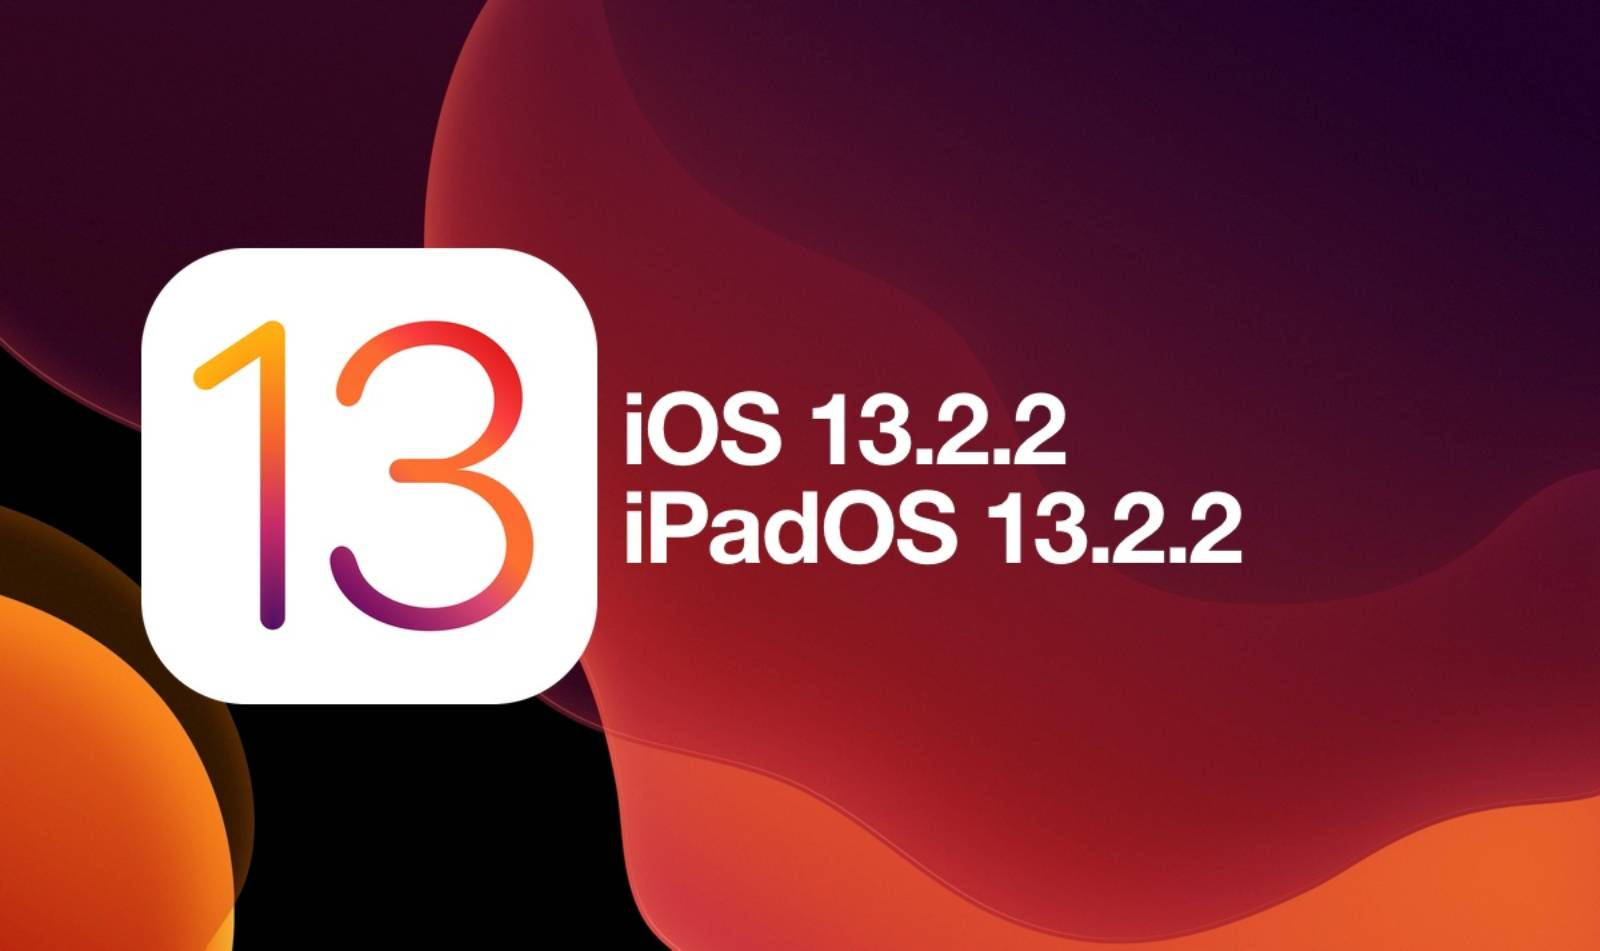 iOS 13.2.2 decizie apple